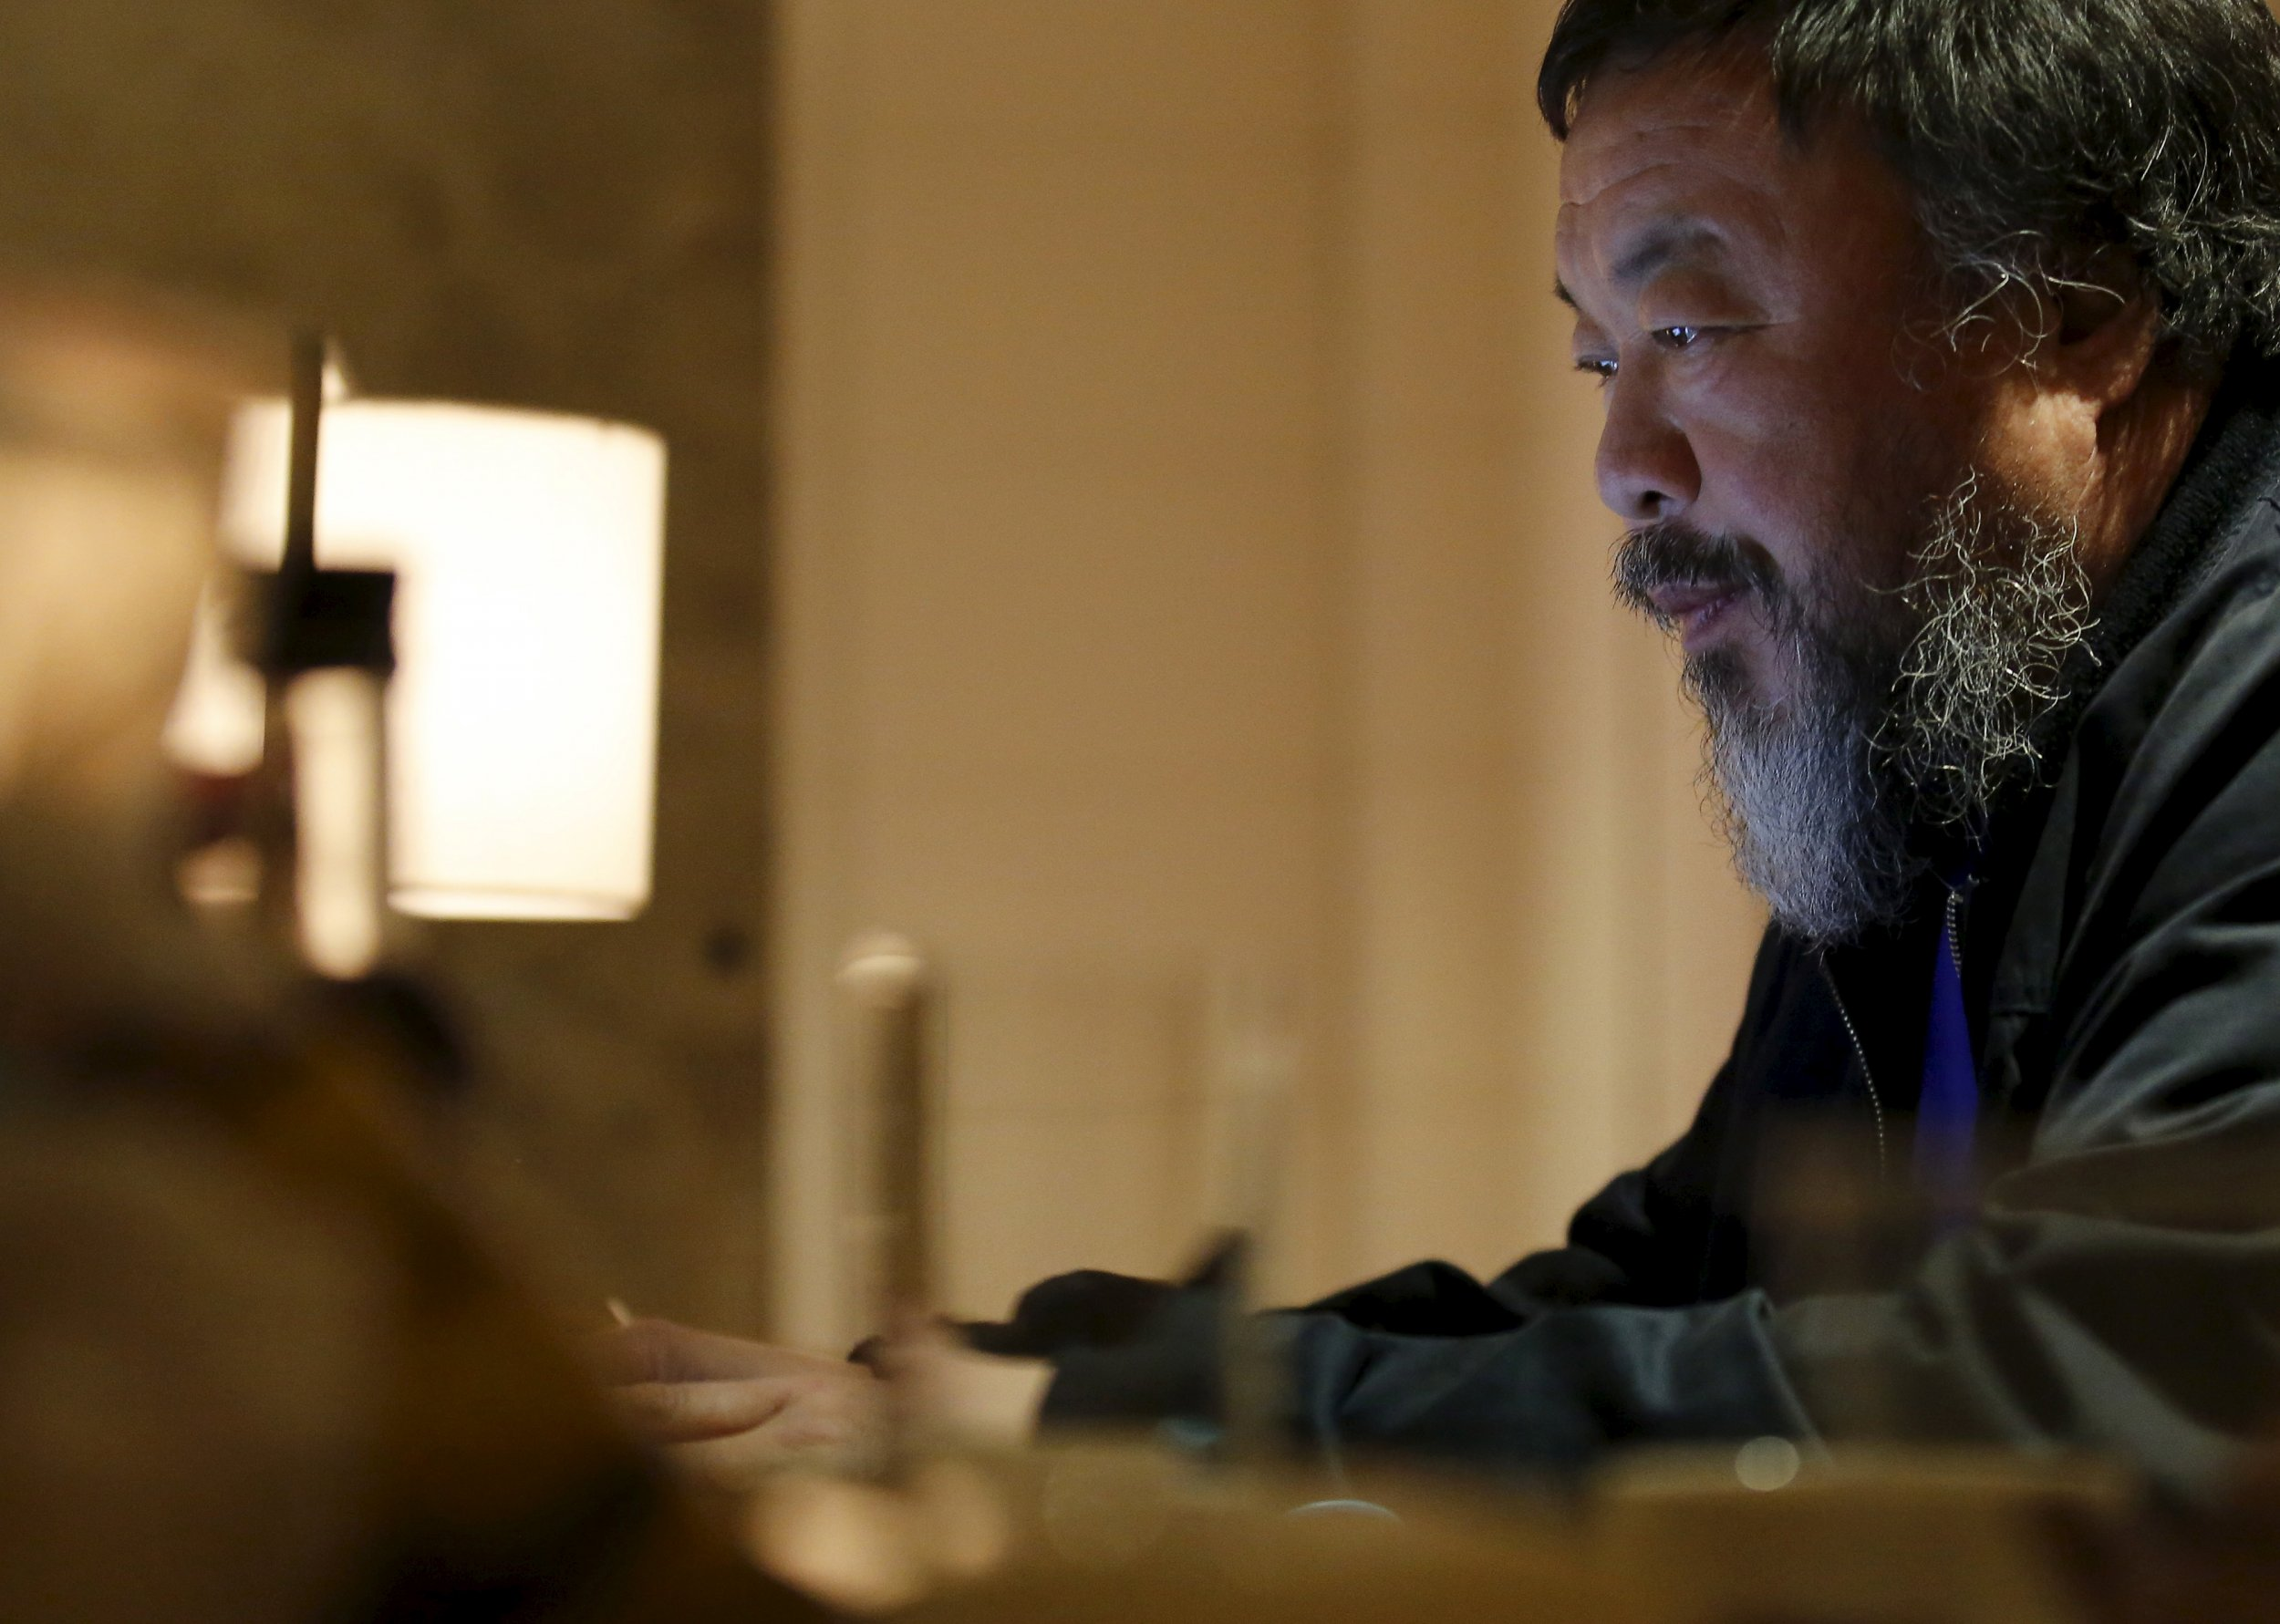 ai weiwei newsweek essay Newsweek bottom-feeding september 8th now we must get into the substance of ai weiwei's essay which newsweek eagerly peddled and.